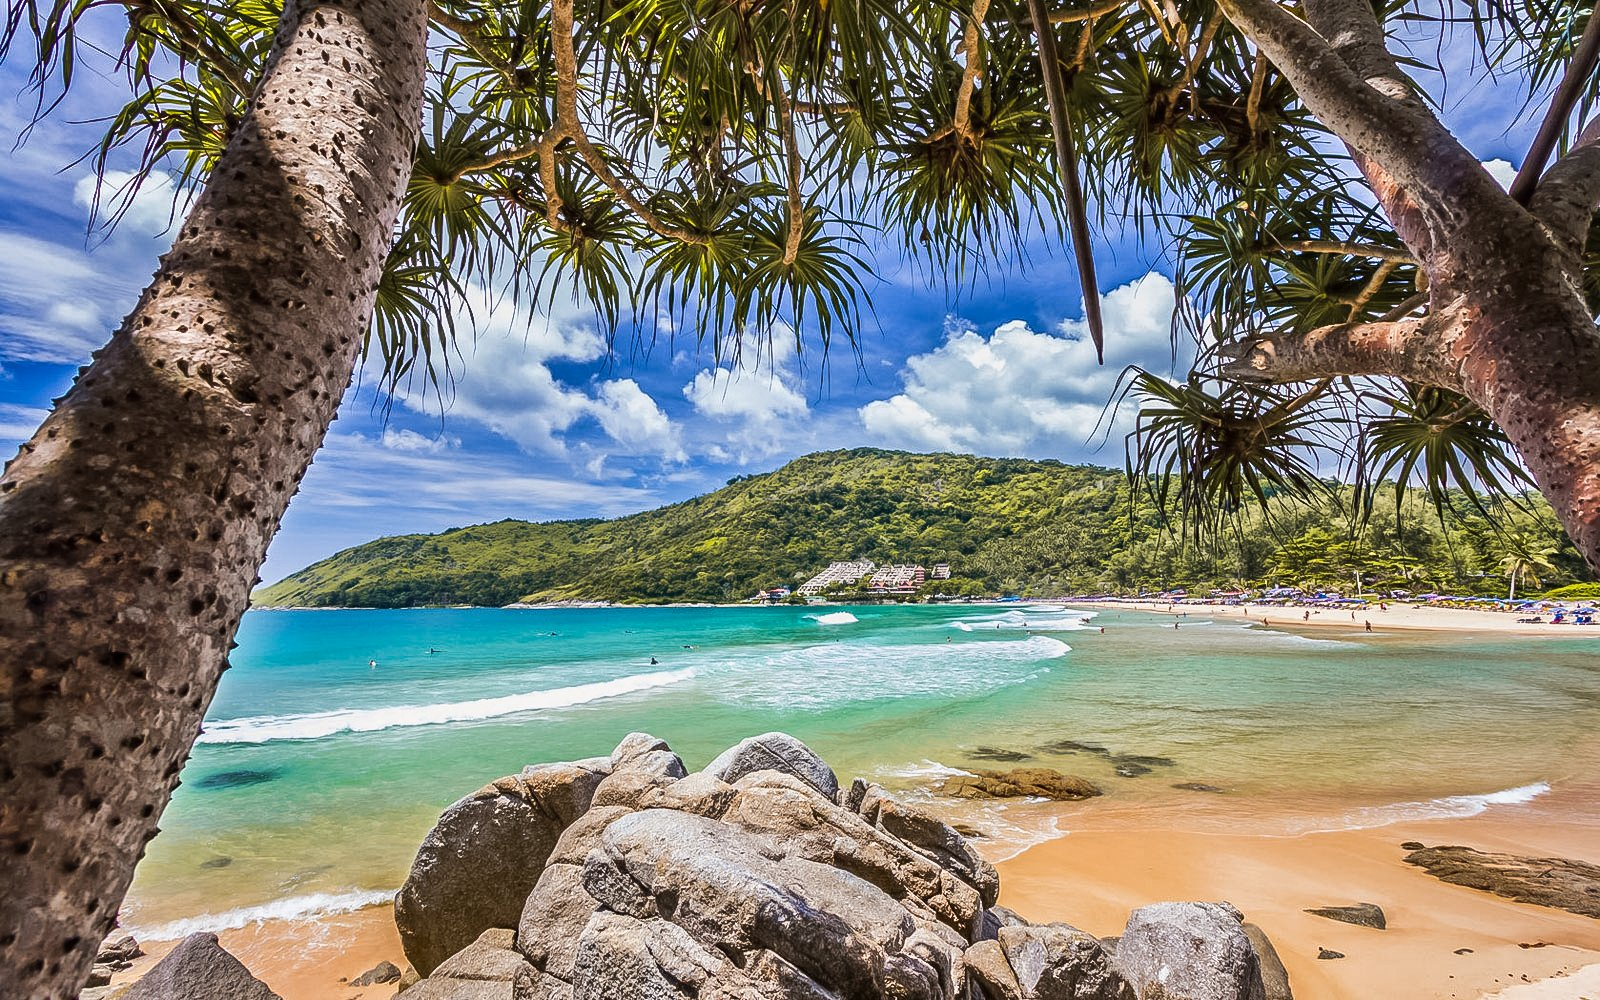 Nai Harn Beach is located in the south part of Phuket island in Thailand.